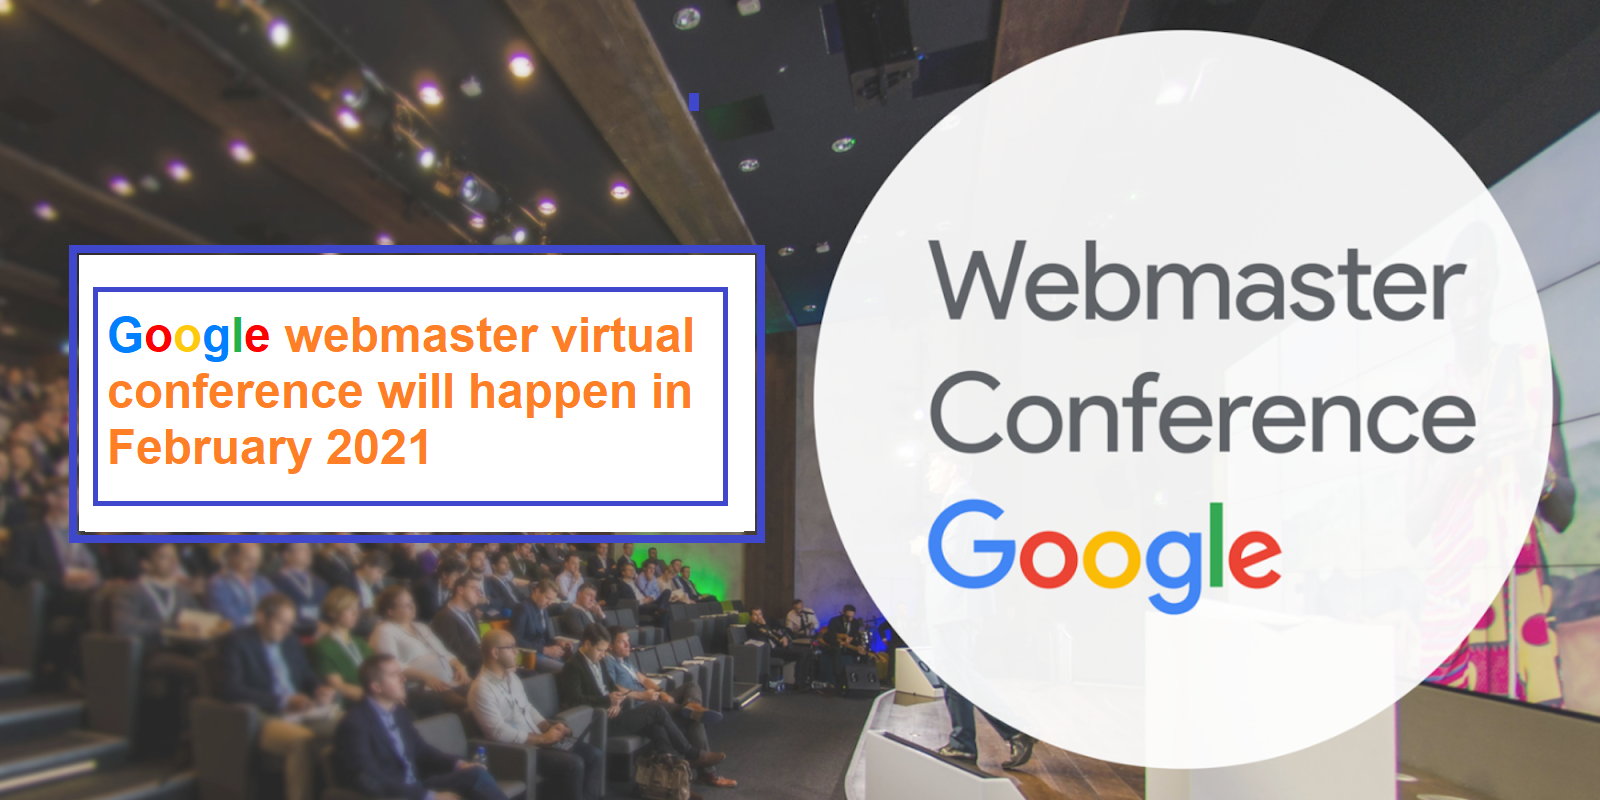 Google webmaster virtual conference